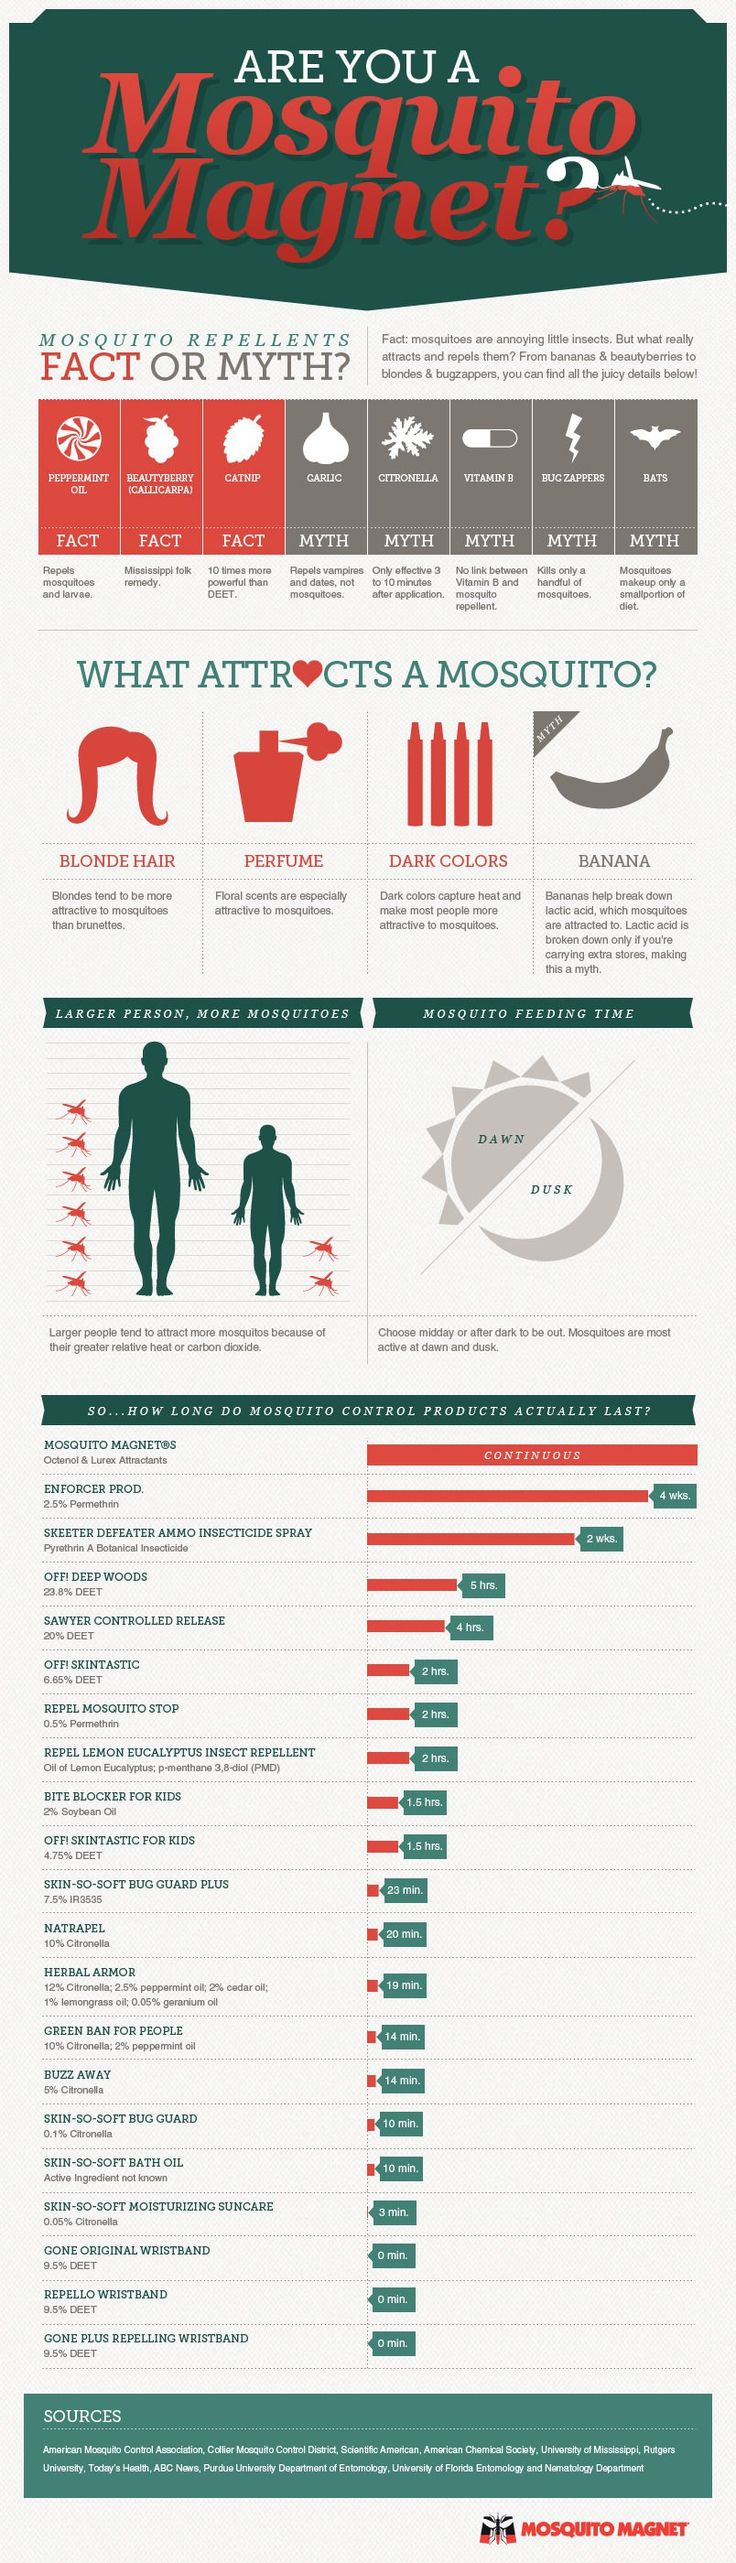 Are You A Mosquito Magnet [INFOGRAPHIC] – Infographic List